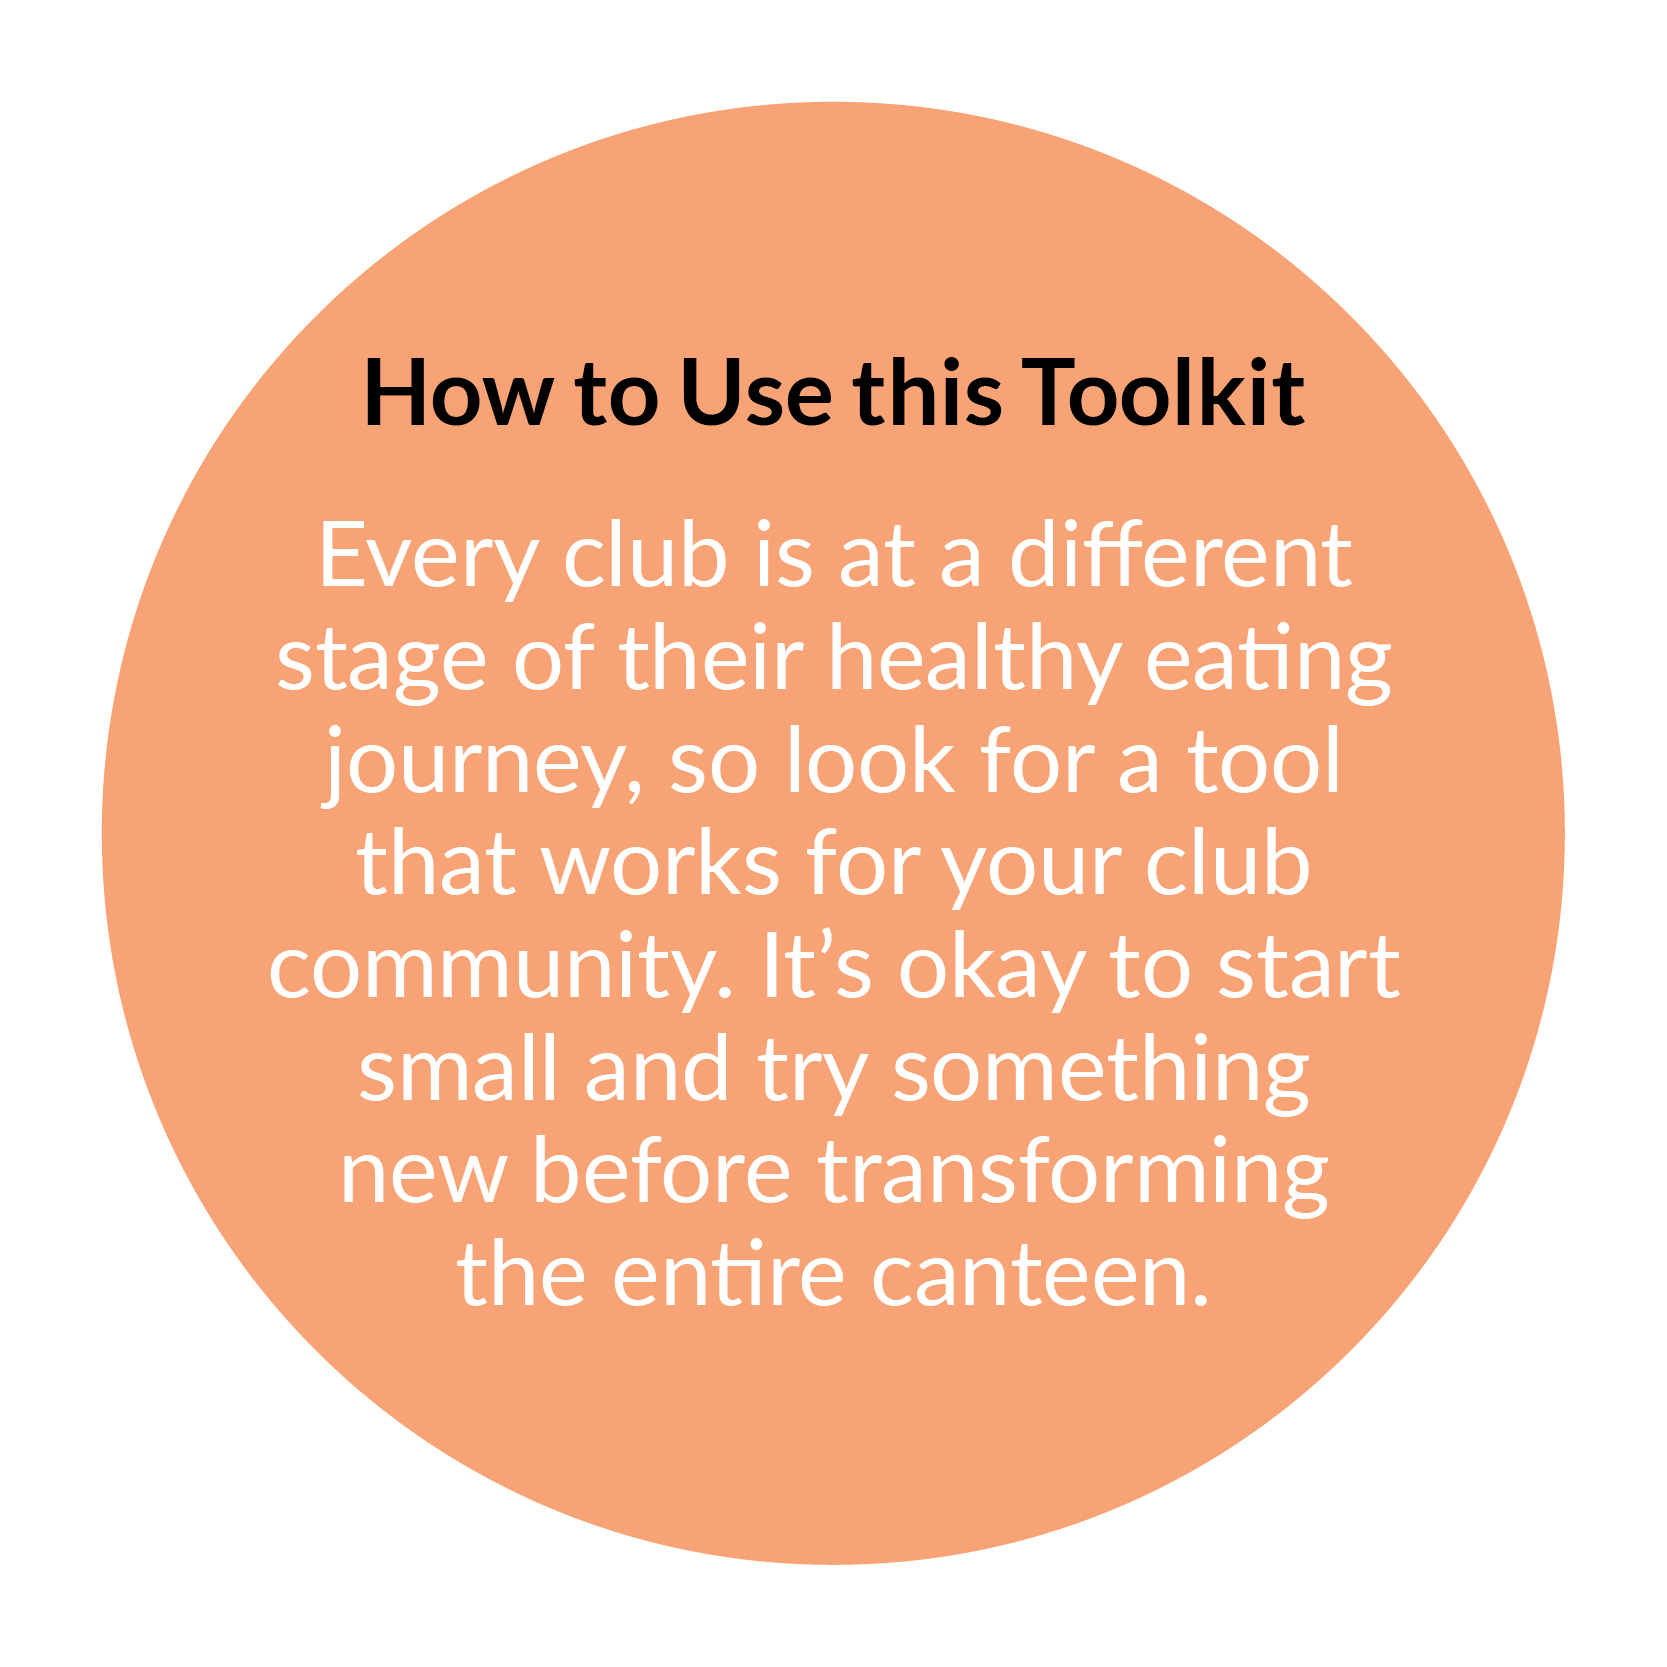 How to Use this Toolkit